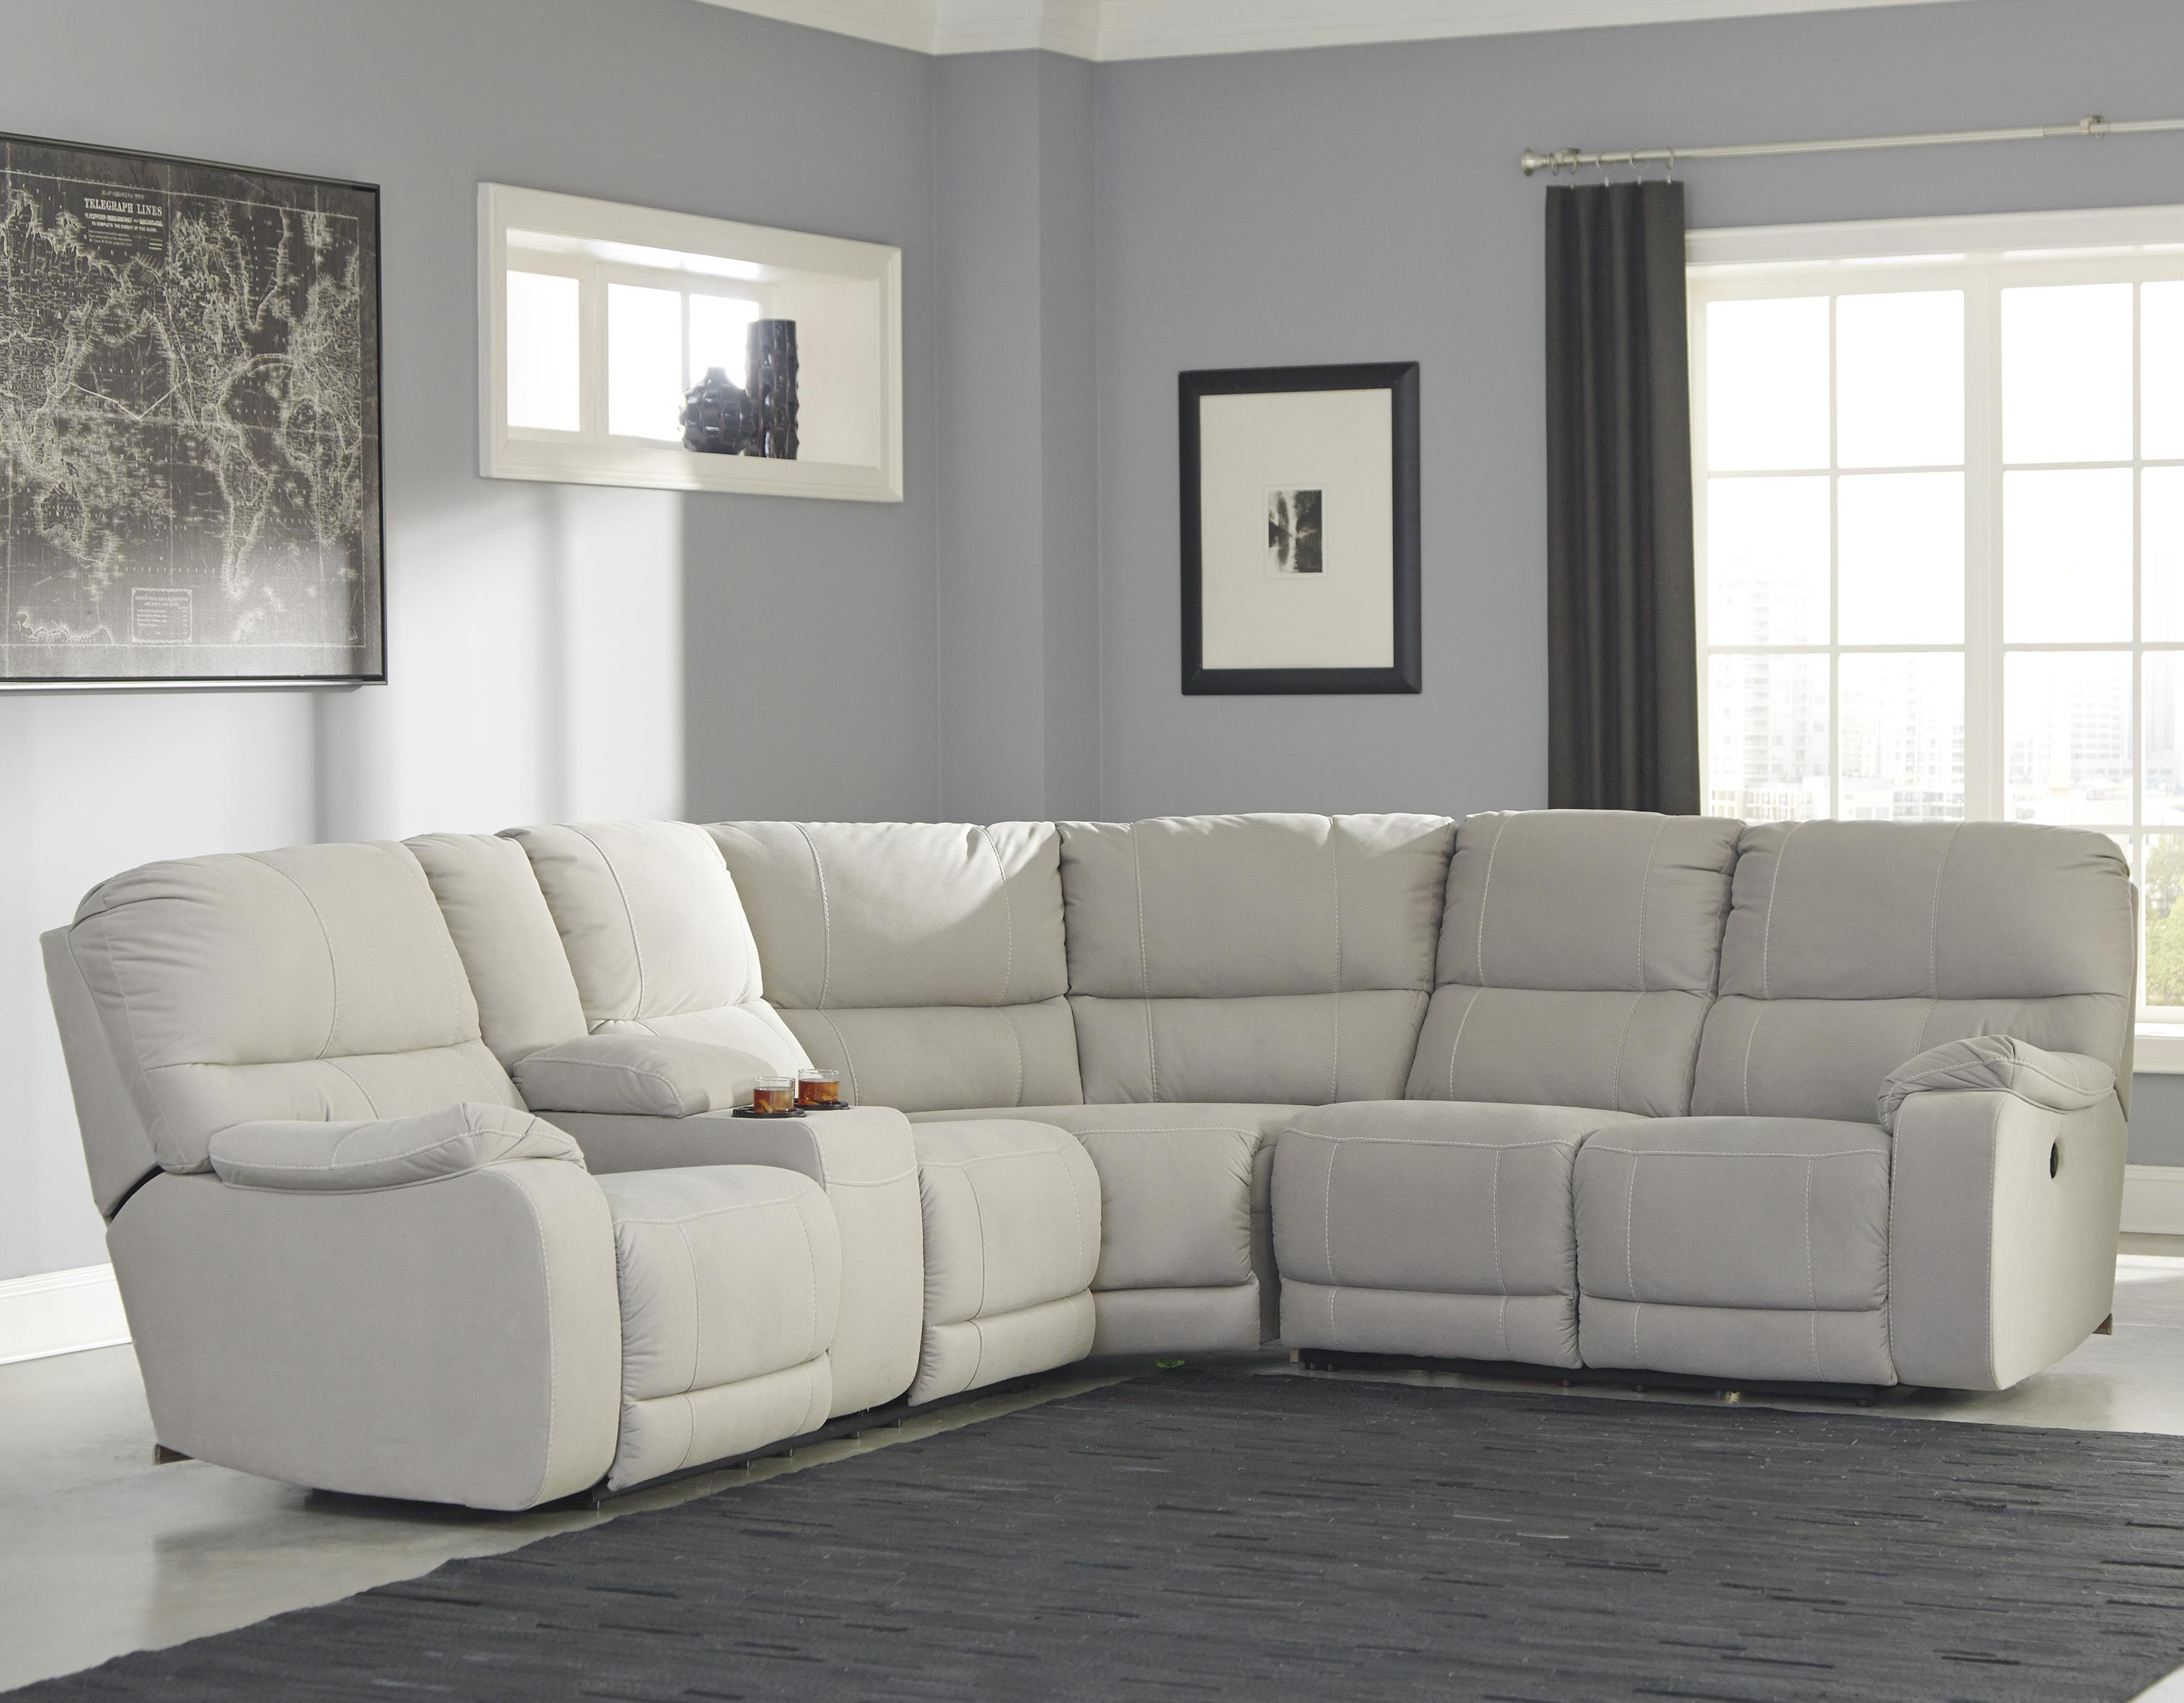 Benchcraft Bohannon Power Reclining Sectional with Console - Item Number: 5740101+77+75